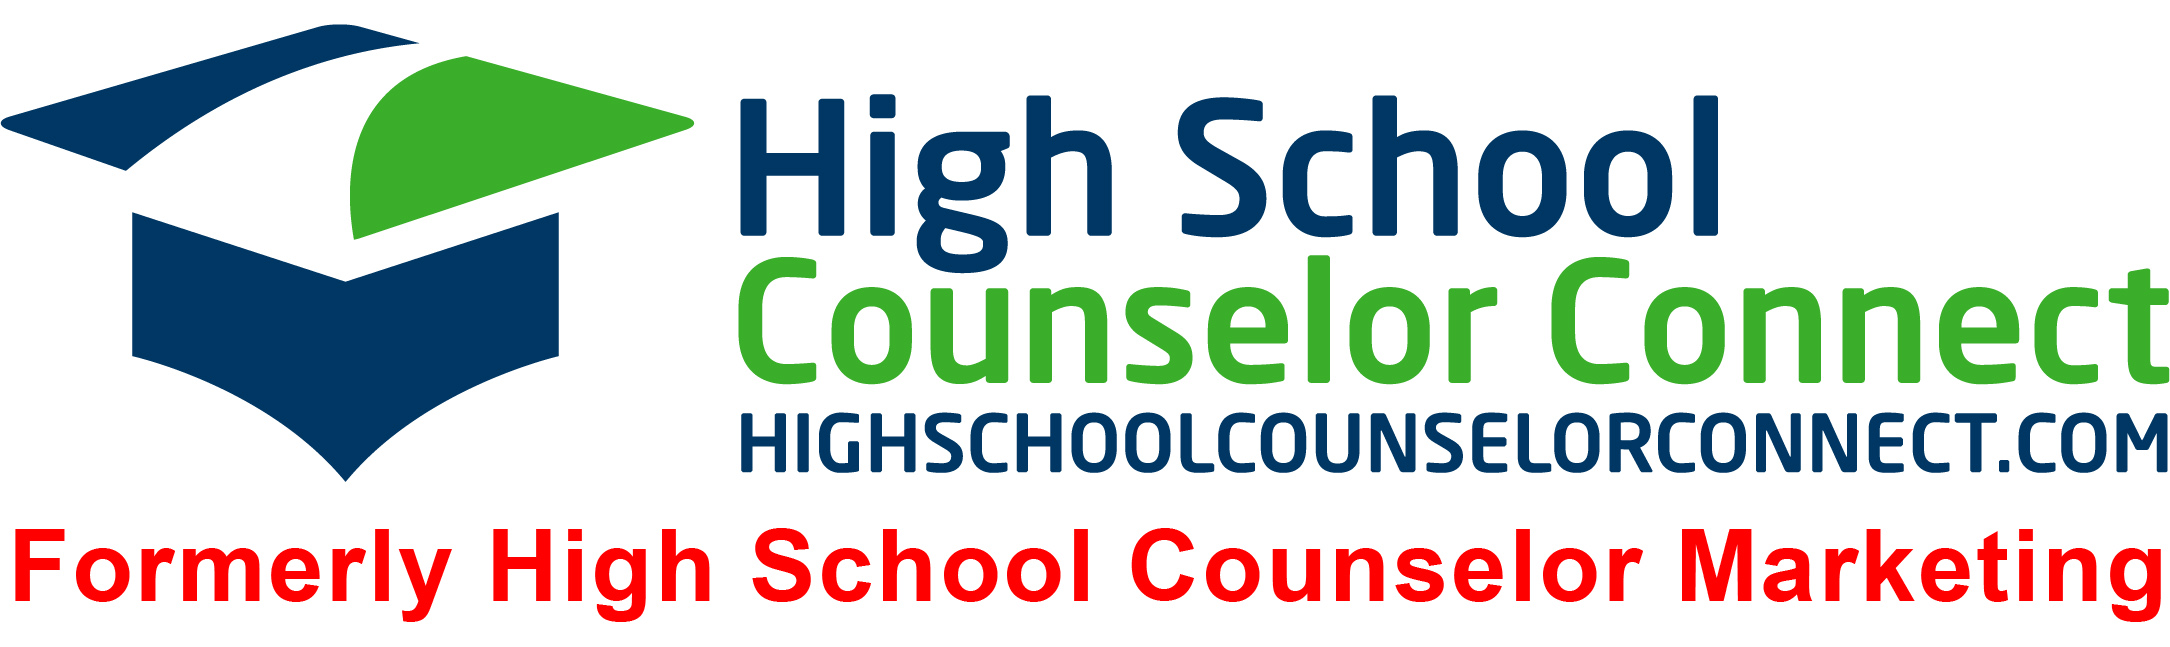 High School Counselor Connect